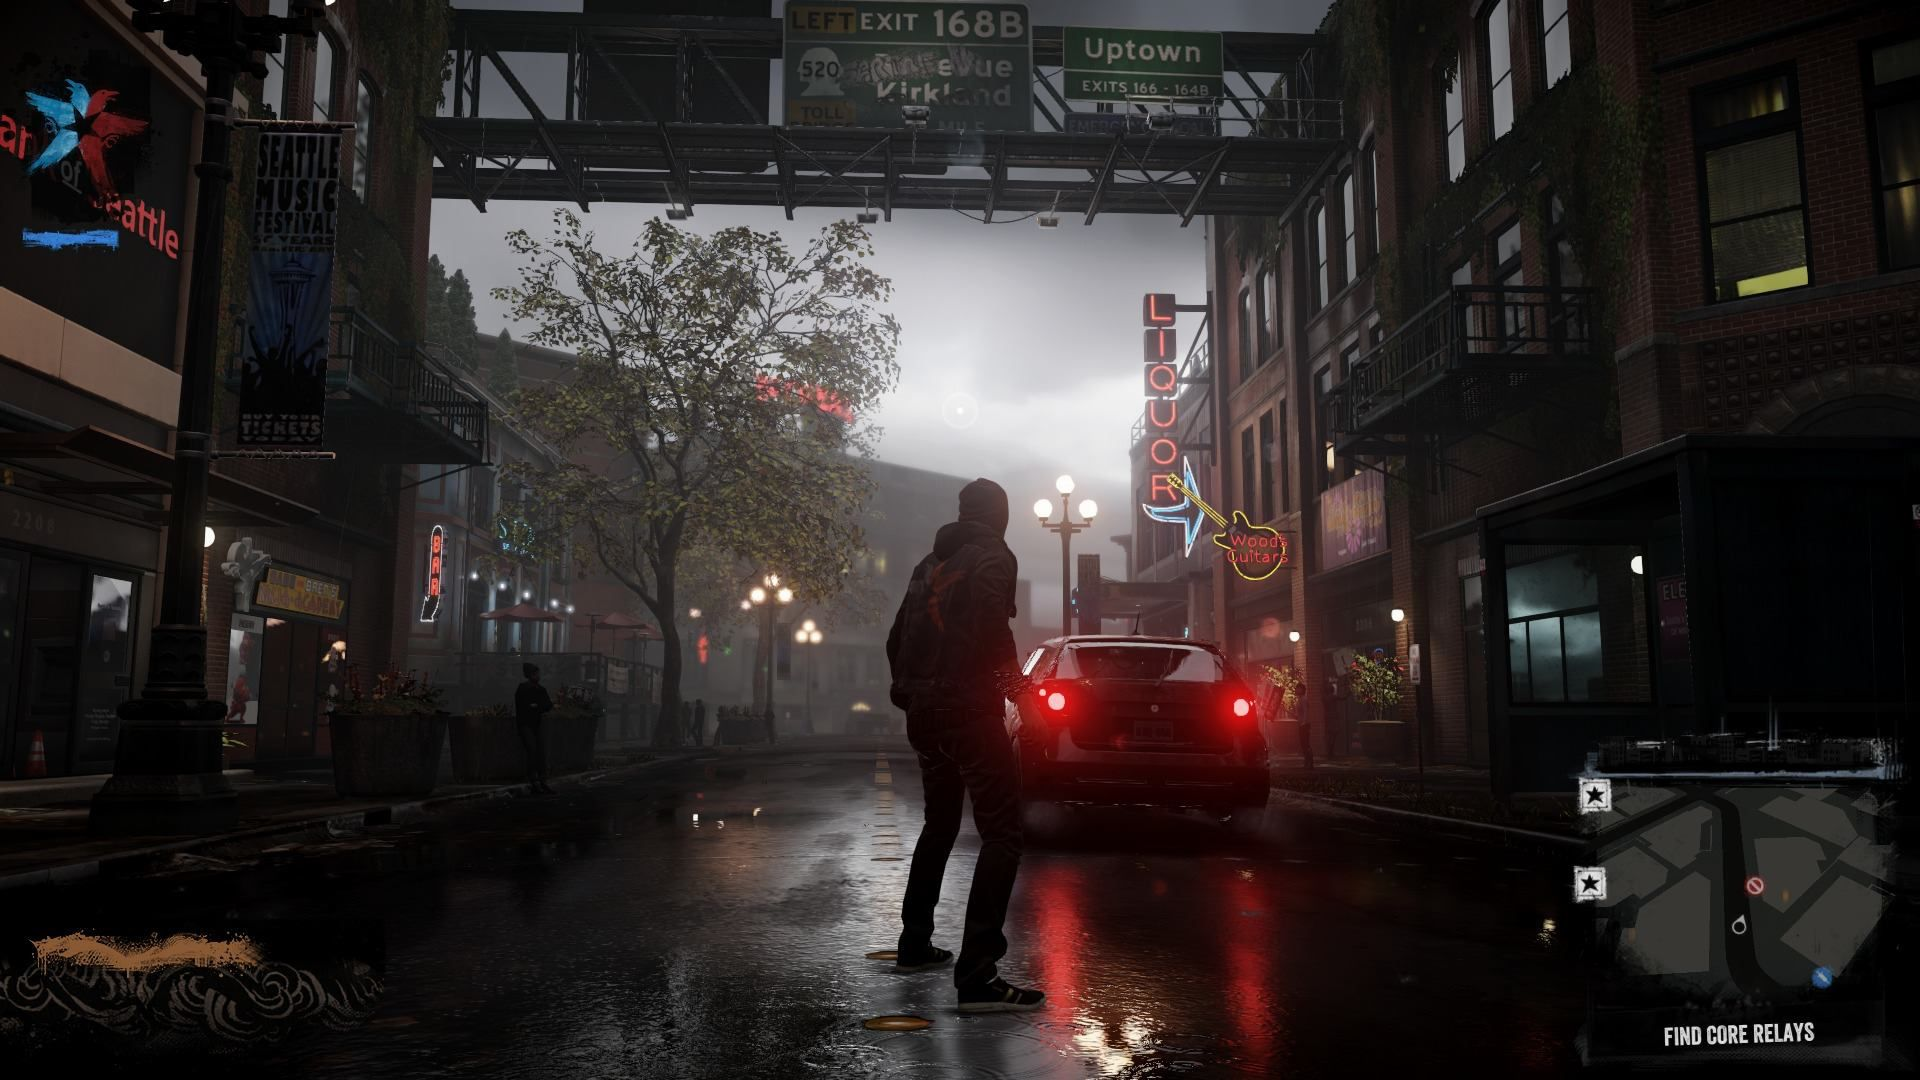 infamous-second-son-in-game-image-3